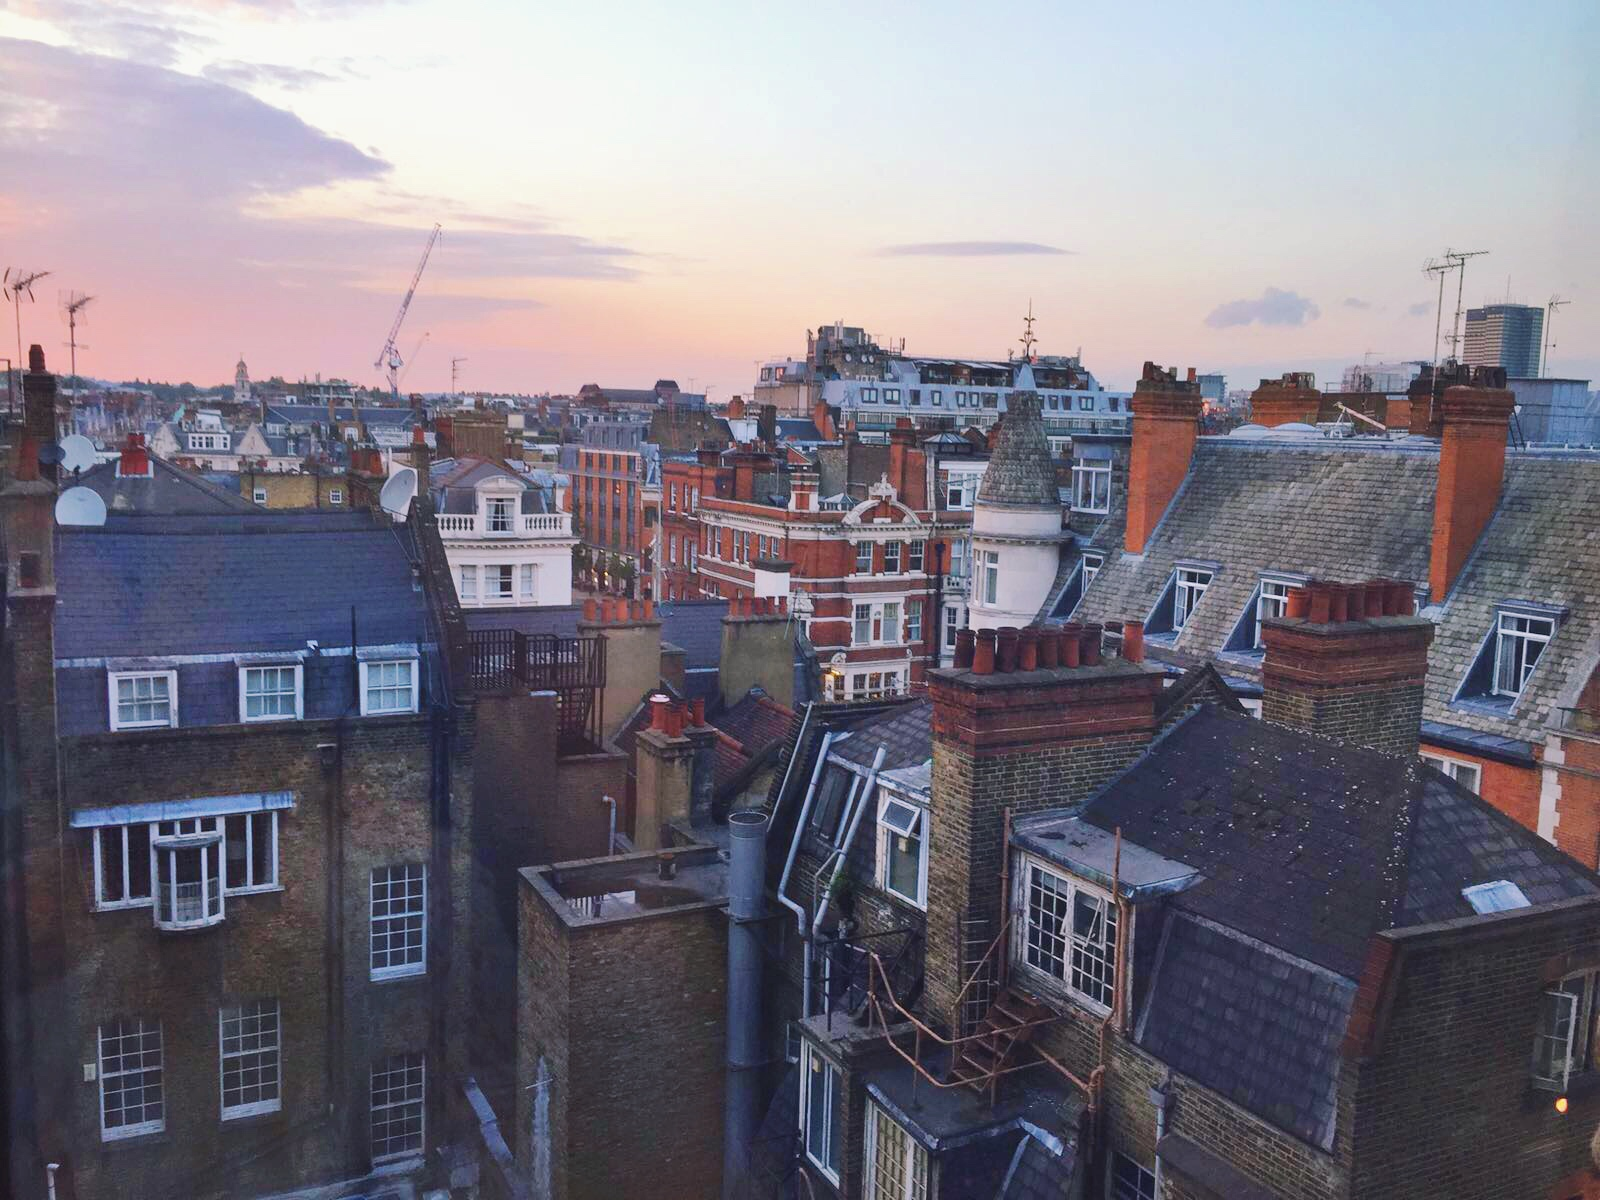 The French Riviera in the heart of Marylebone